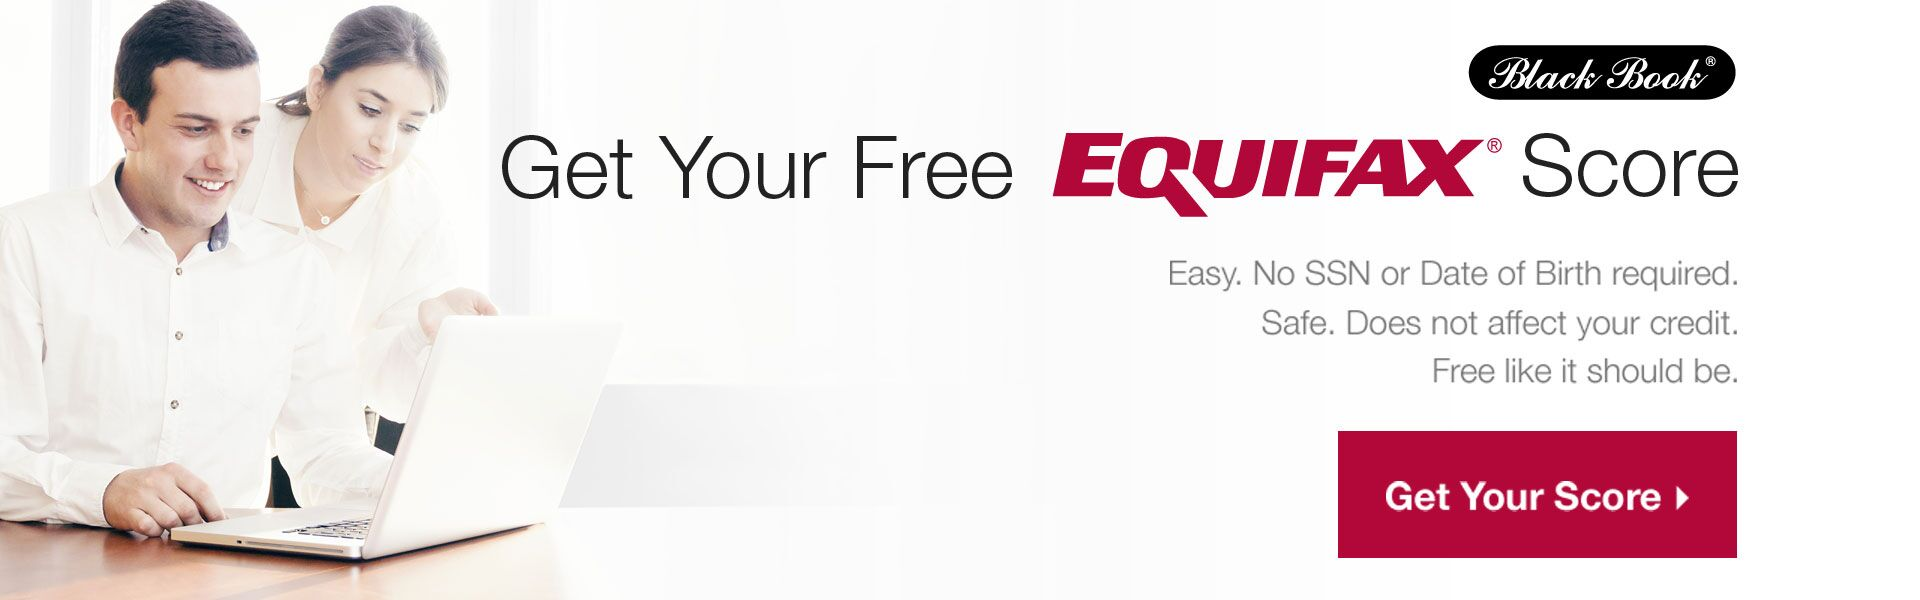 Free Equifax Credit Score